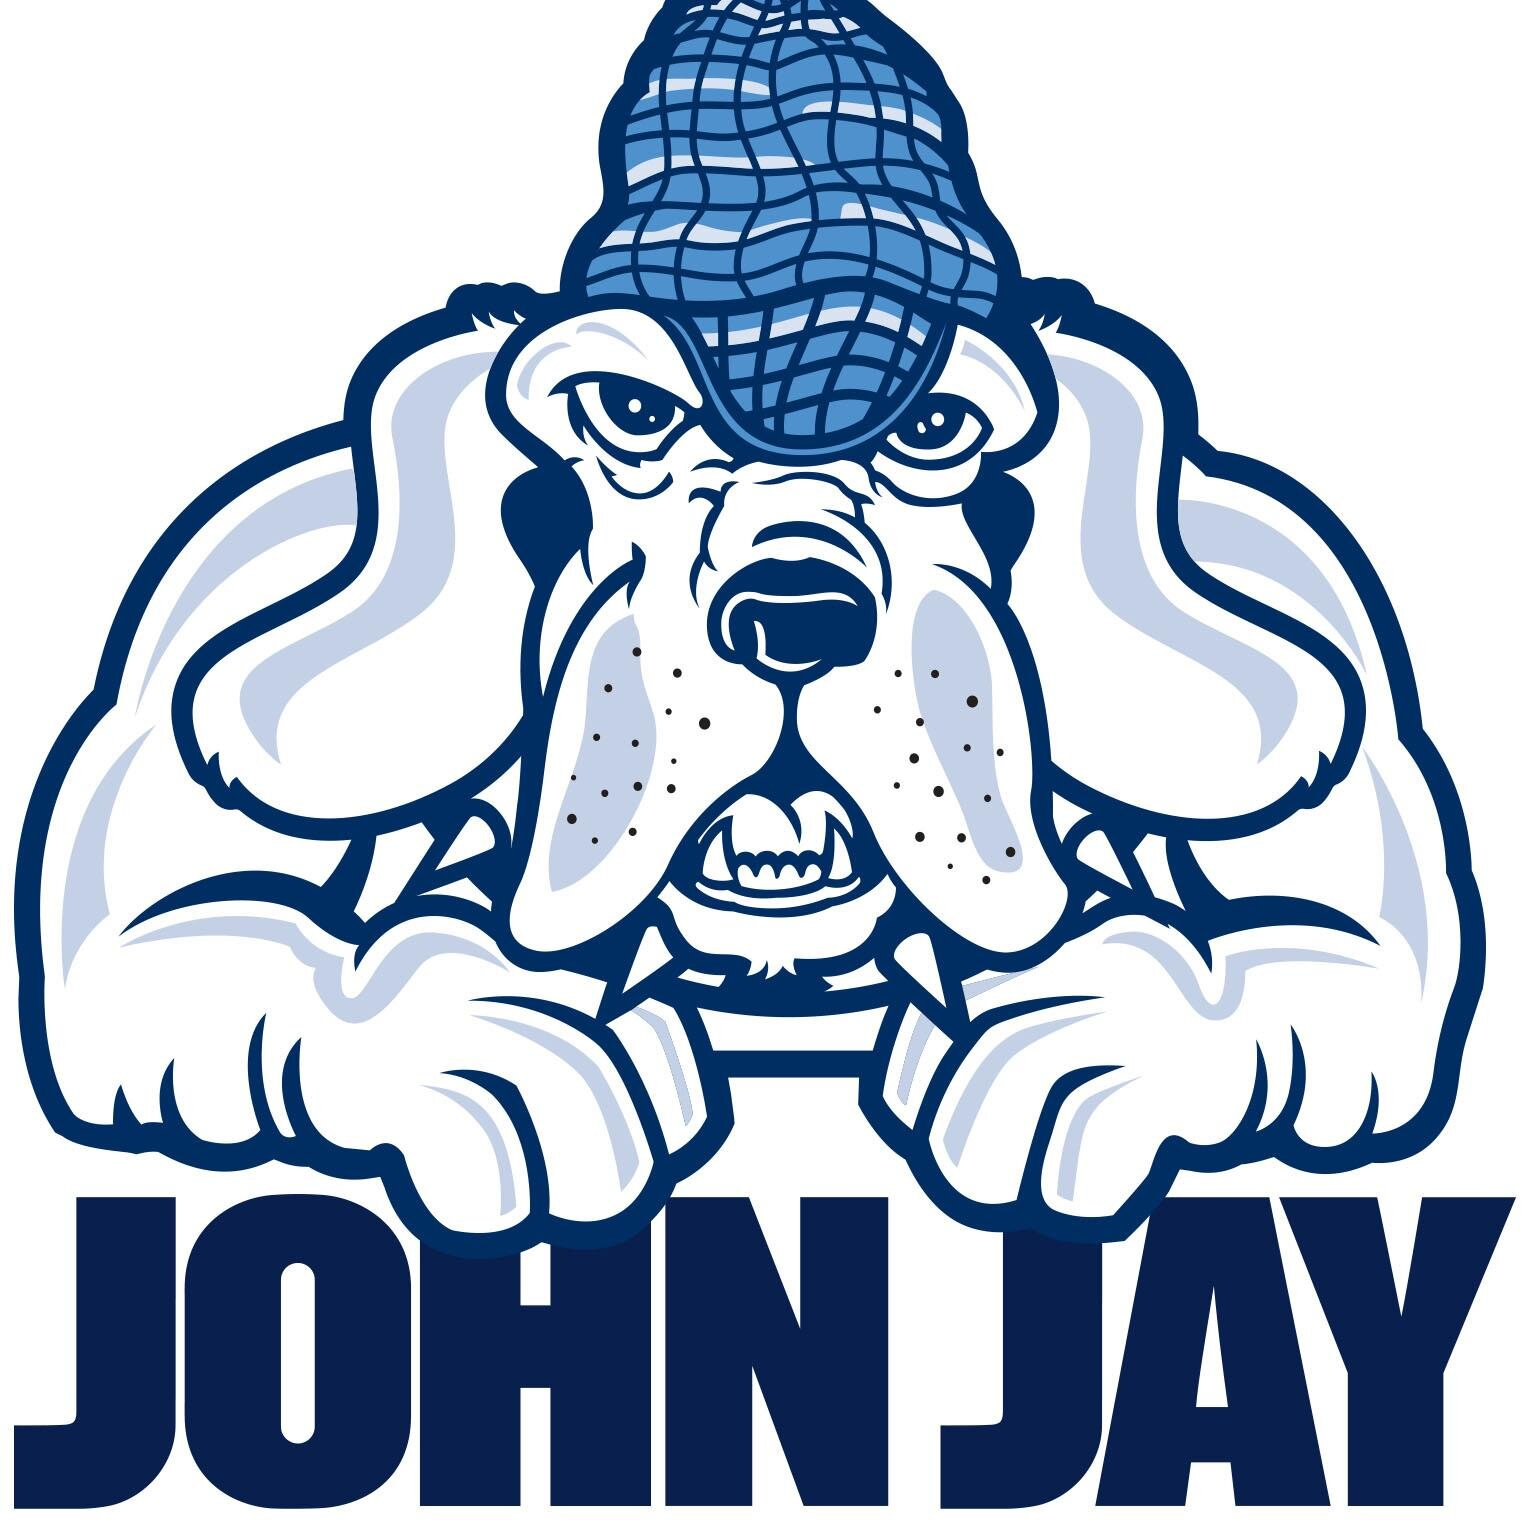 The john jay college of criminal justice bloodhounds scorestream biocorpaavc Choice Image